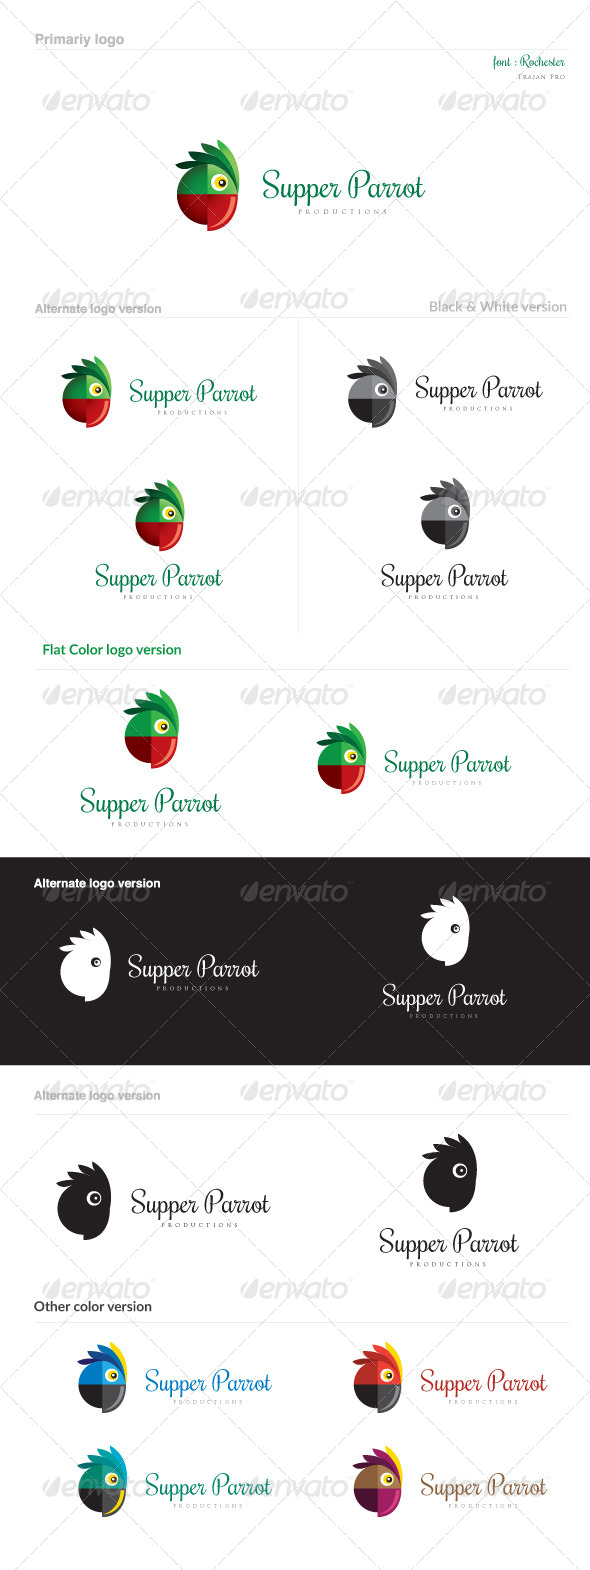 GraphicRiver Supper Parrot 8758844